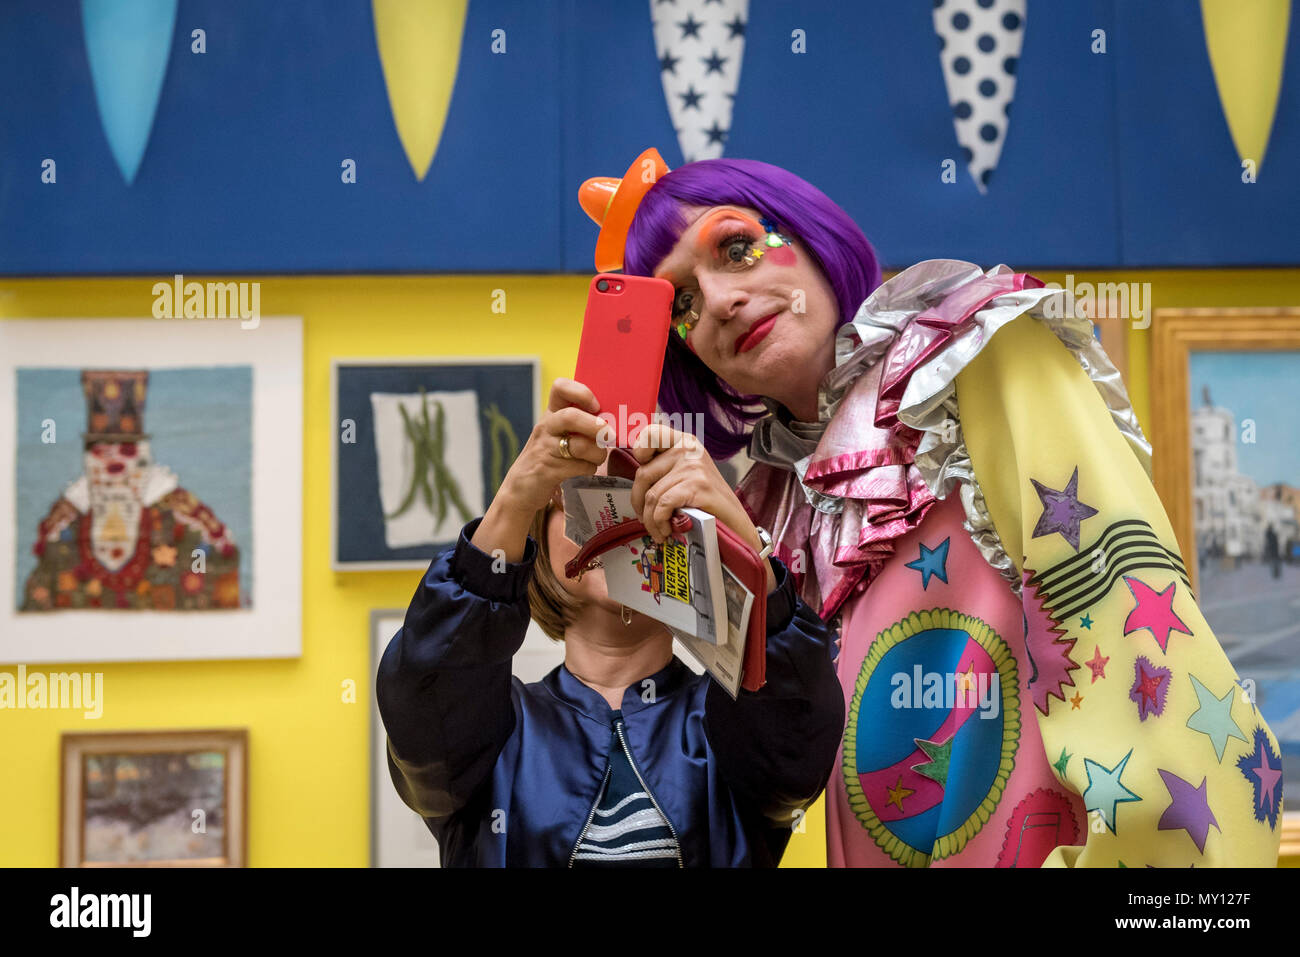 London, UK.  5 June 2018. Grayson Perry RA with a fan in one of the vividly coloured galleries at the preview of the 250th Summer Exhibition at the Royal Academy of Arts in Piccadilly, which has been co-ordinated by Grayson Perry RA this year.  Running concurrently, is The Great Spectacle, featuring highlights from the past 250 years.  Both shows run 12 June to 19 August 2018.  Credit: Stephen Chung / Alamy Live News - Stock Image